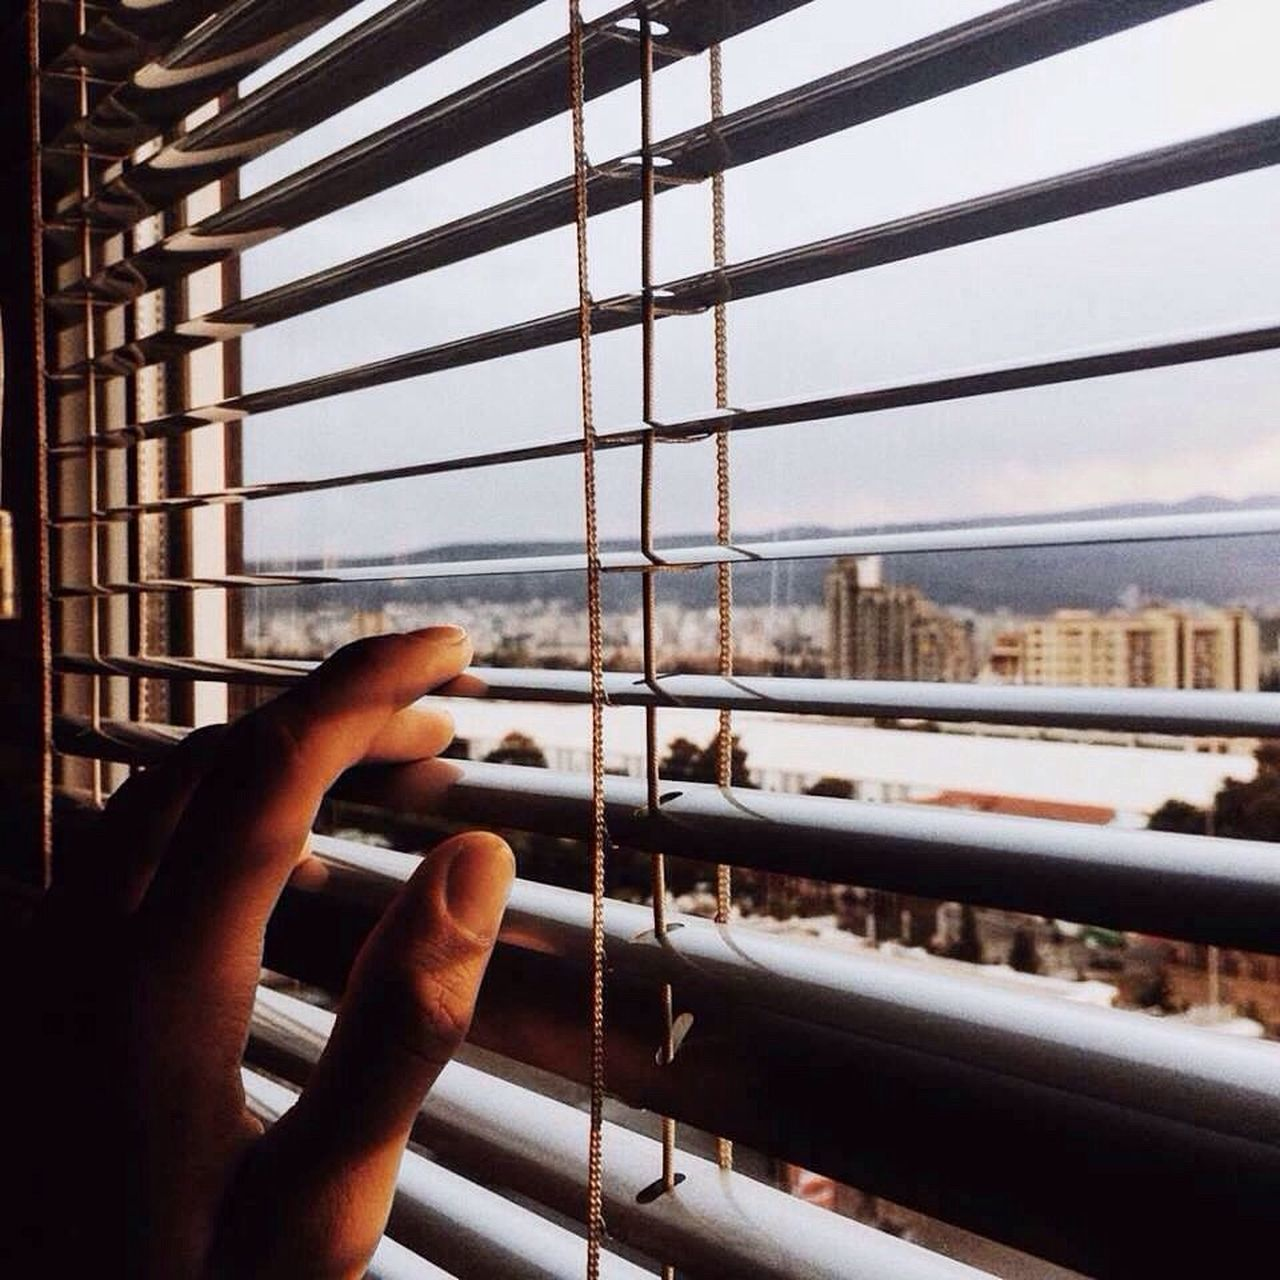 Window Human Hand Sea Water Human Body Part Travel Looking Through Window Day Sky Indoors  Cityscape People One Person Adult Adults Only